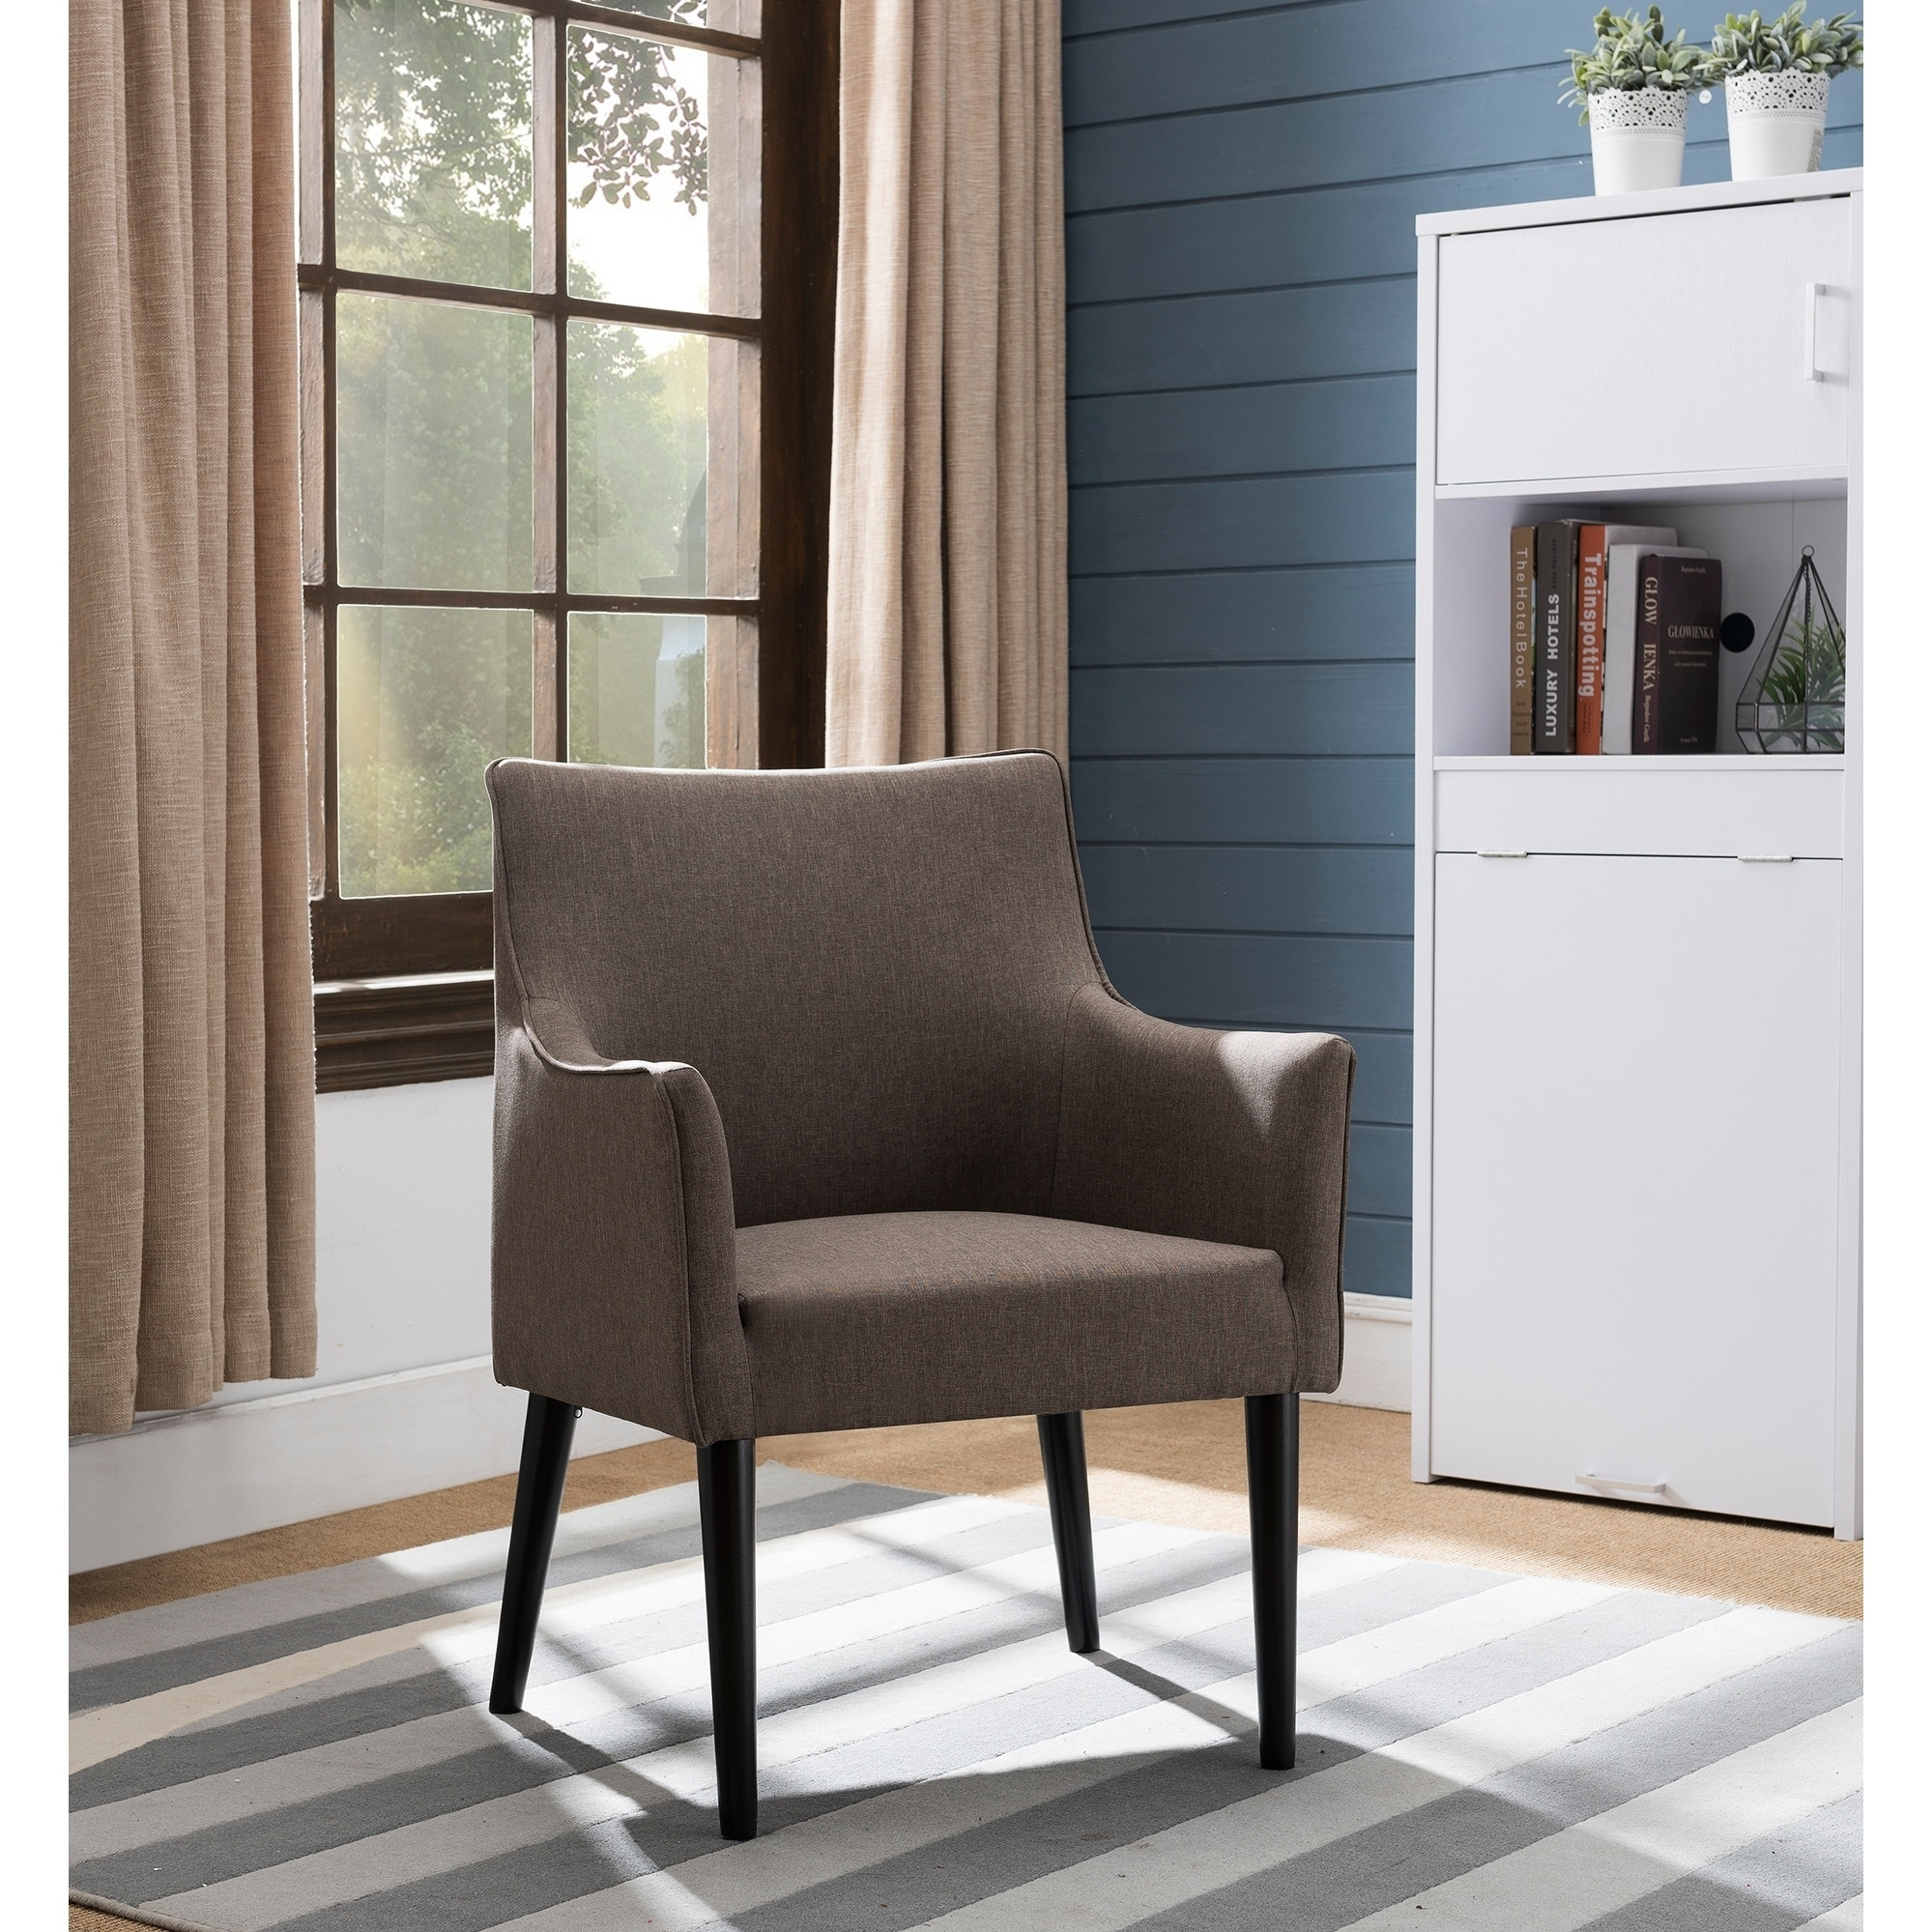 AC6302 Brown Fabric-upholstered Armchair with Solid Wood Legs